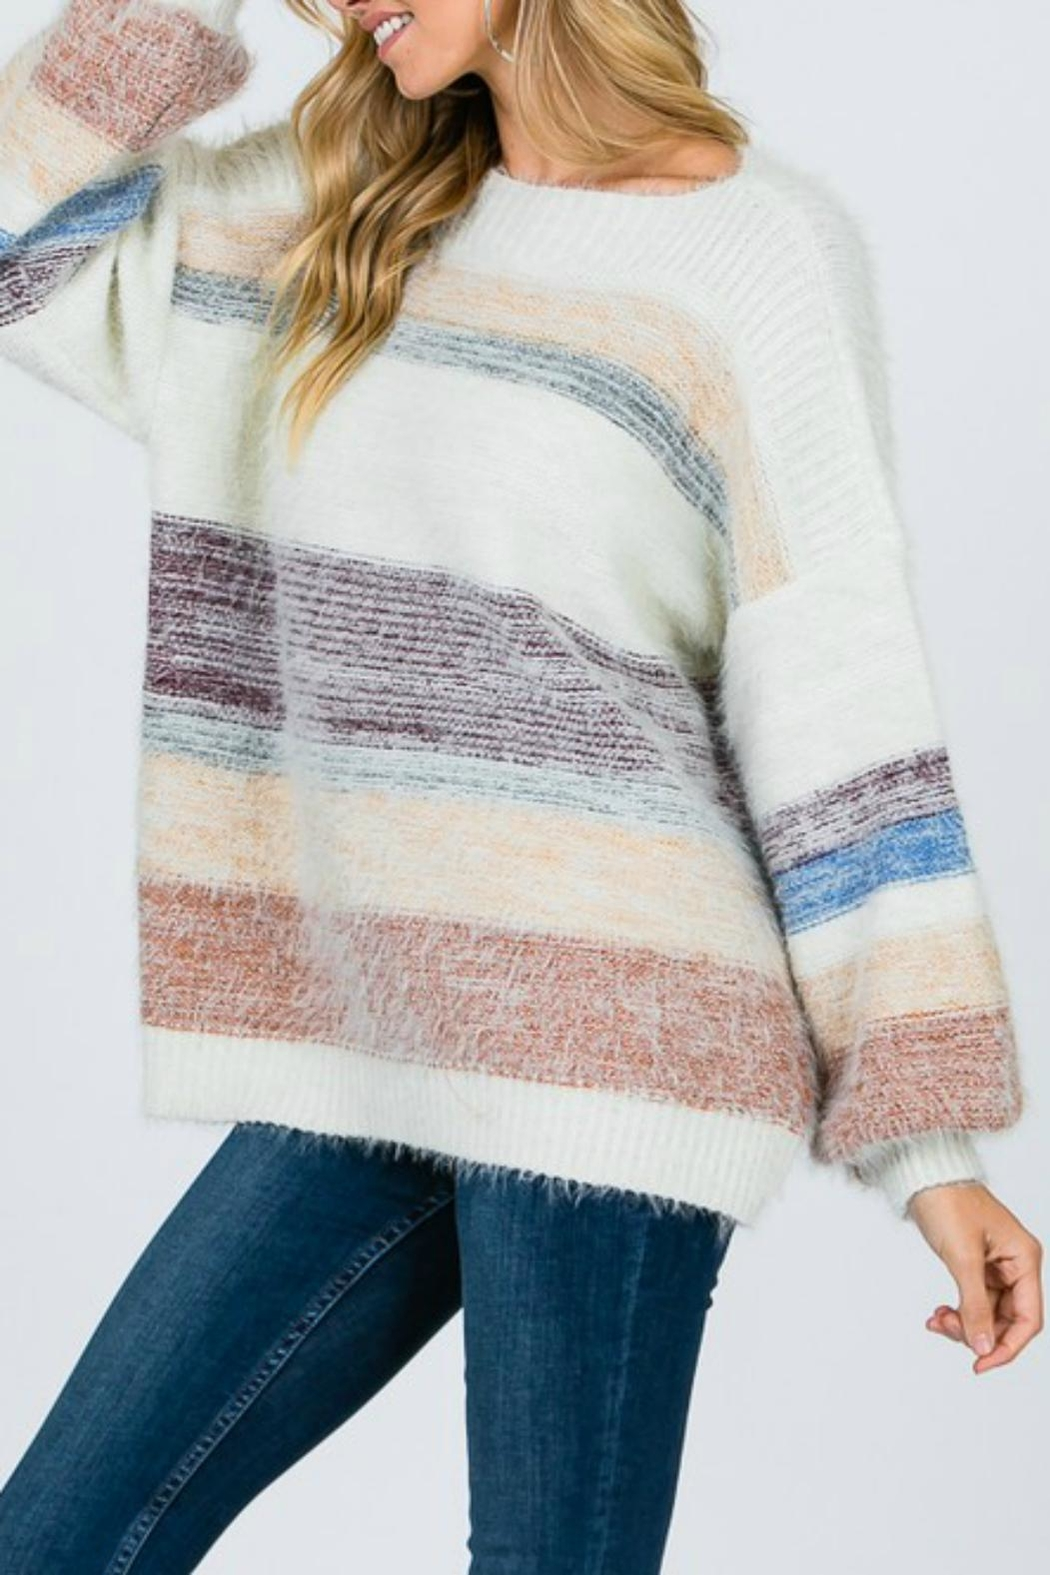 Pretty Little Things Mohair Colorblock Sweater - Main Image